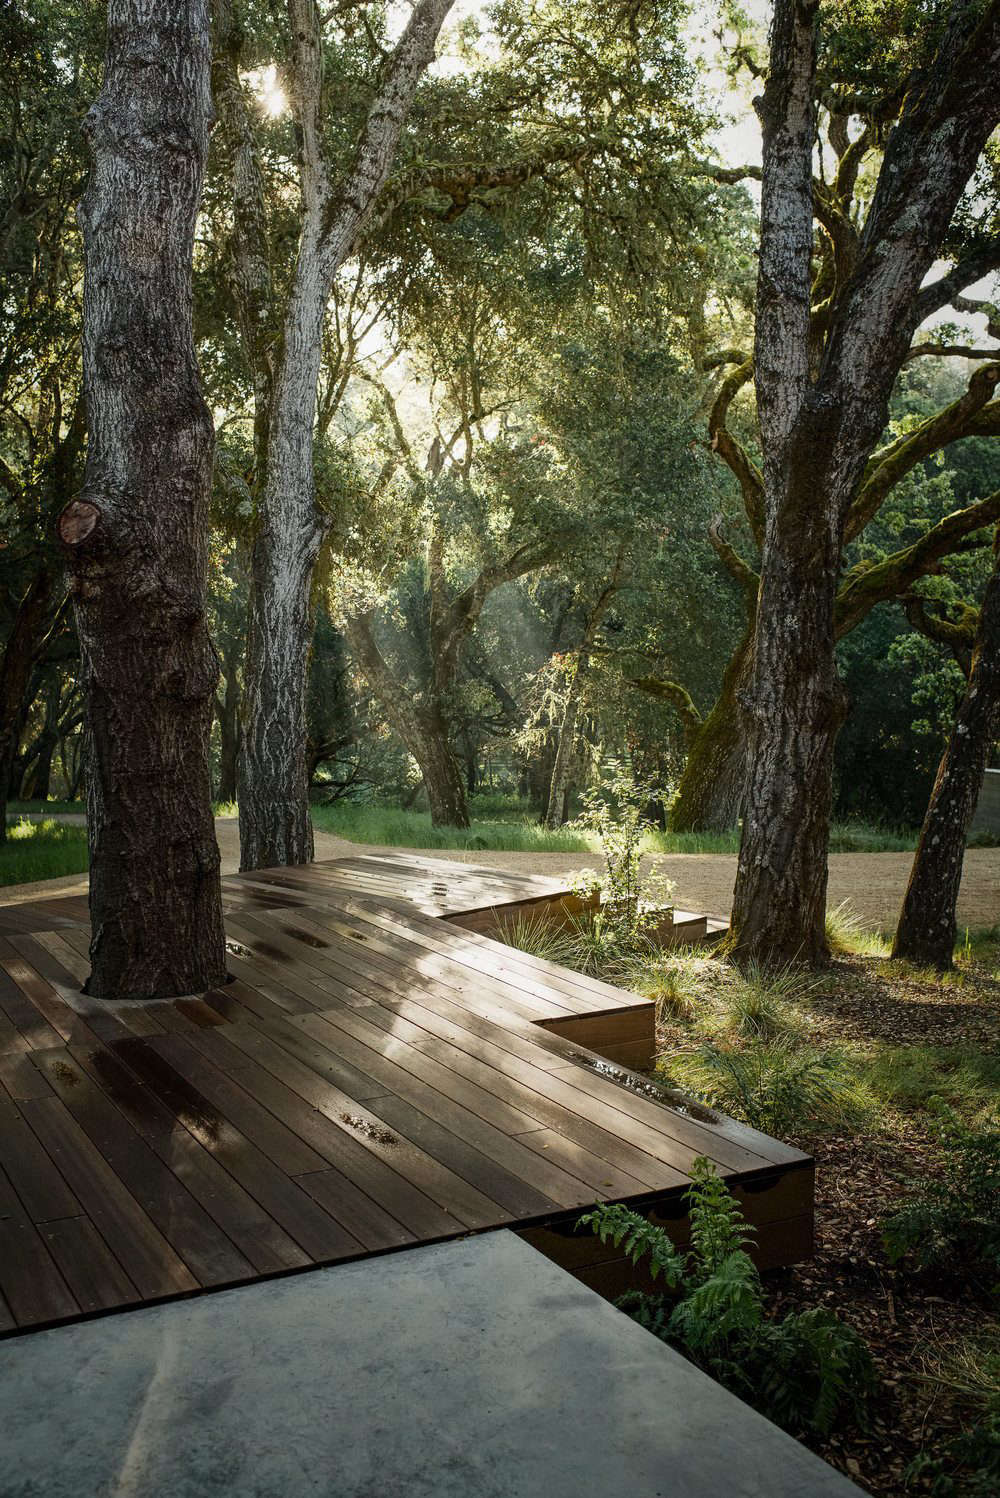 Photography by Joe Fletcher courtesy of Sagan Piechota Architecture. See more in Landscape Architect Visit: The California Life, in Carmel Valley.